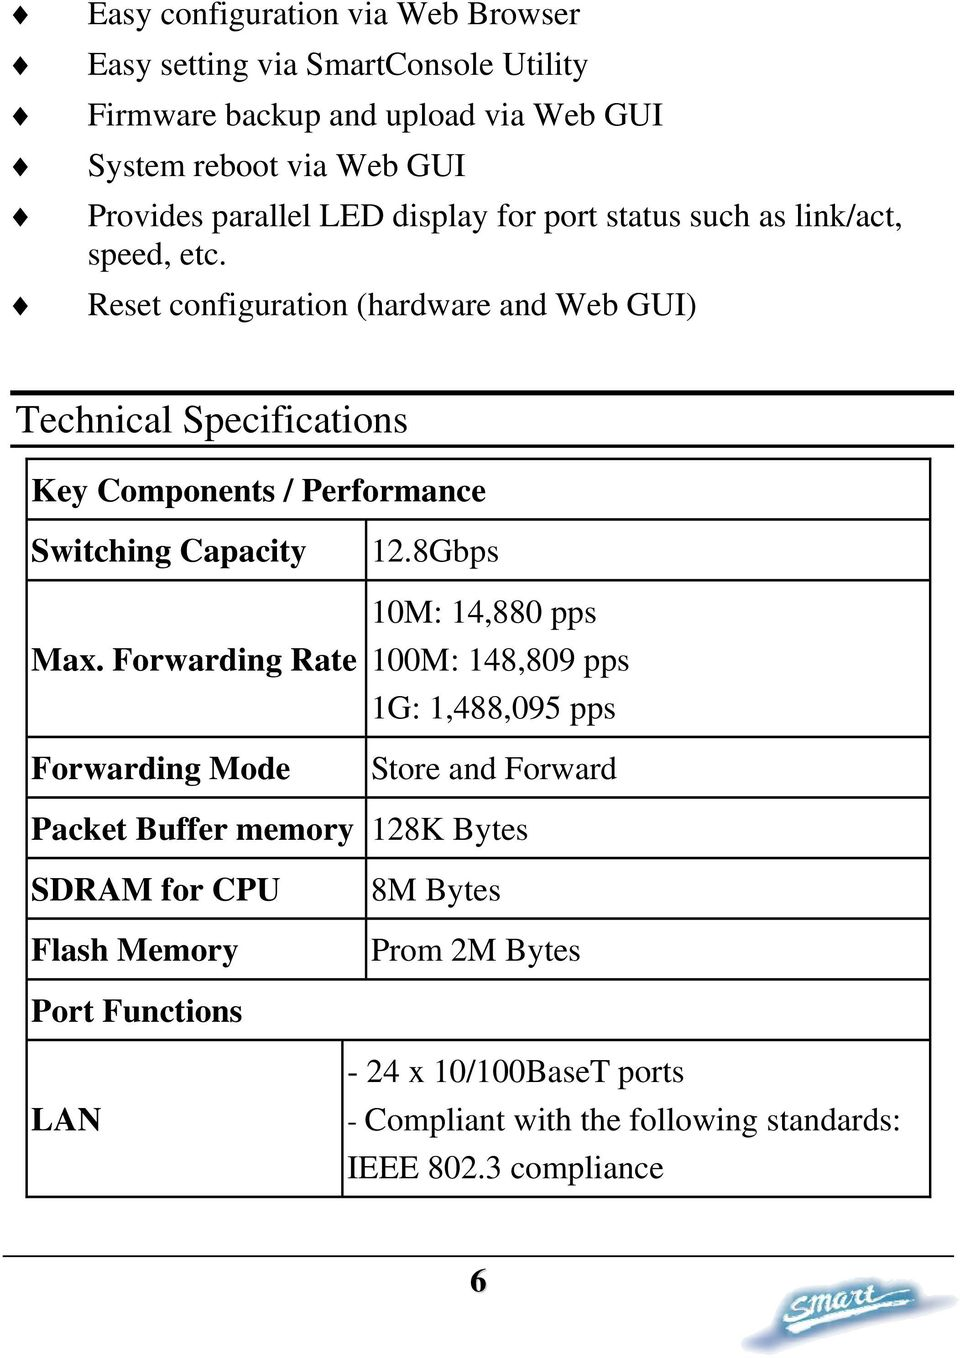 Reset configuration (hardware and Web GUI) Technical Specifications Key Components / Performance Switching Capacity Max. Forwarding Rate Forwarding Mode 12.